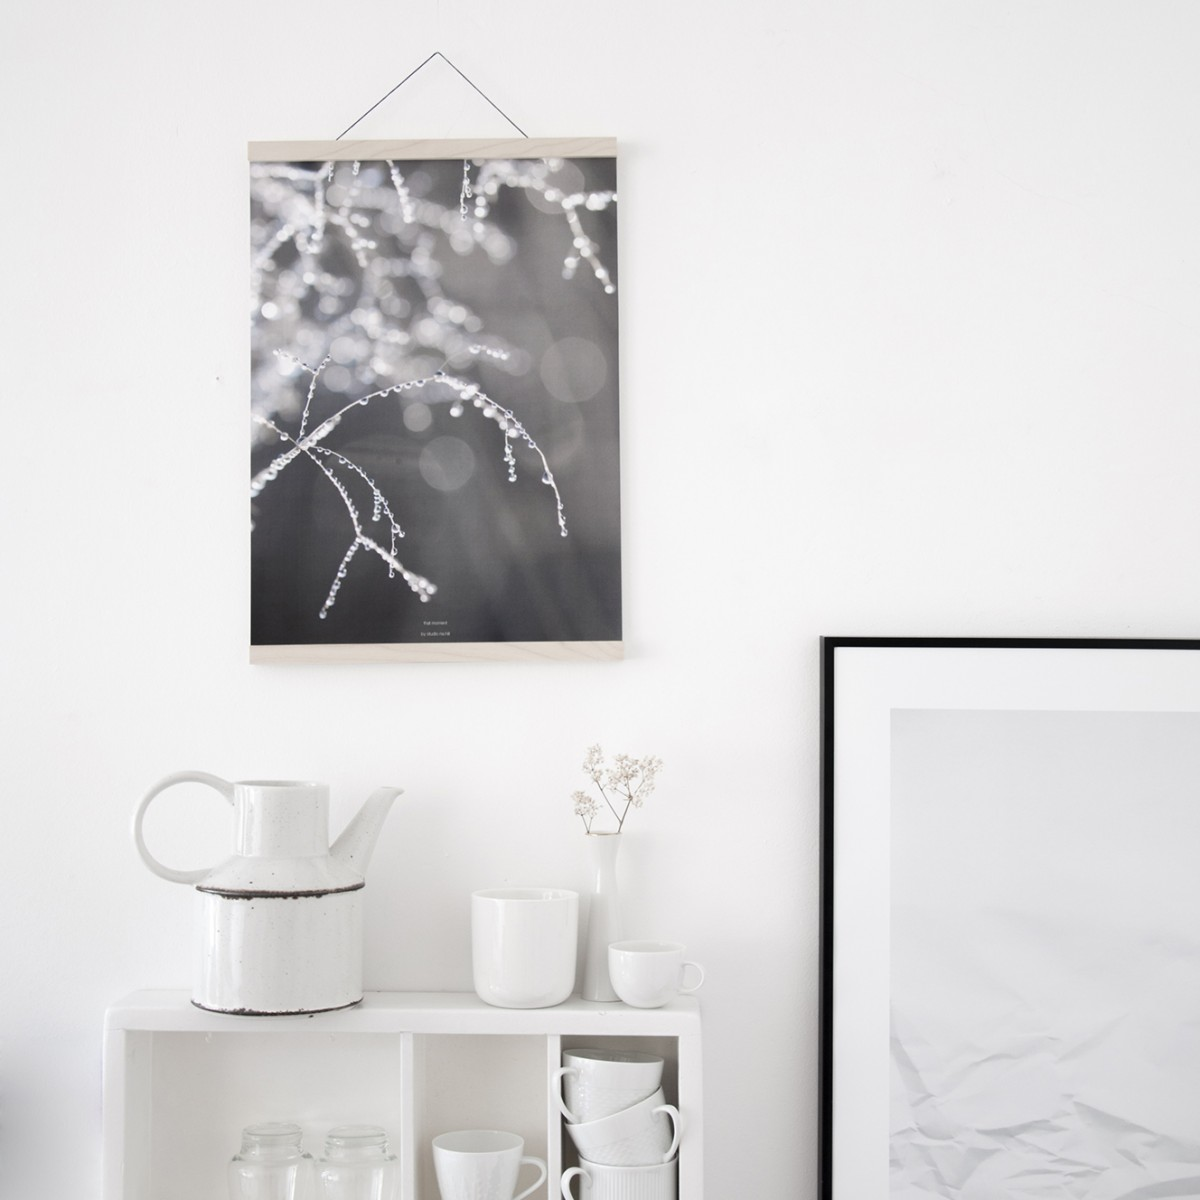 na.hili THAT moment Artprint A3 Poster